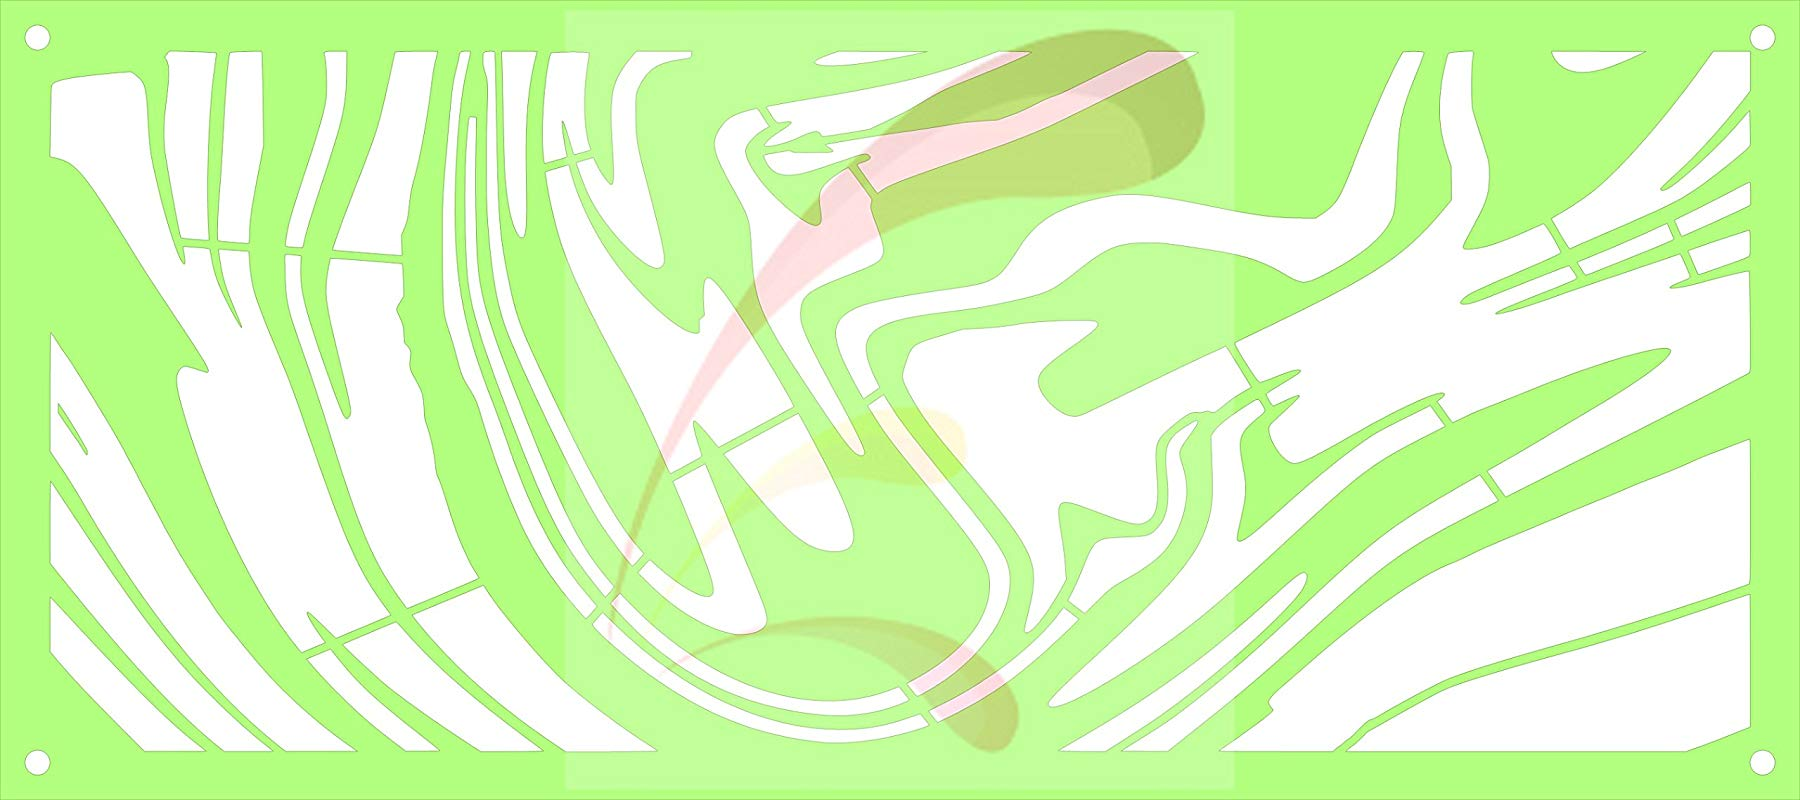 Marbling Cookie Stencil Cake Stencil Coffee Stencil Candy Stencil Cupcake Stencil For Royal Icing Powders Sugars Edible Glitters And Airbrushing